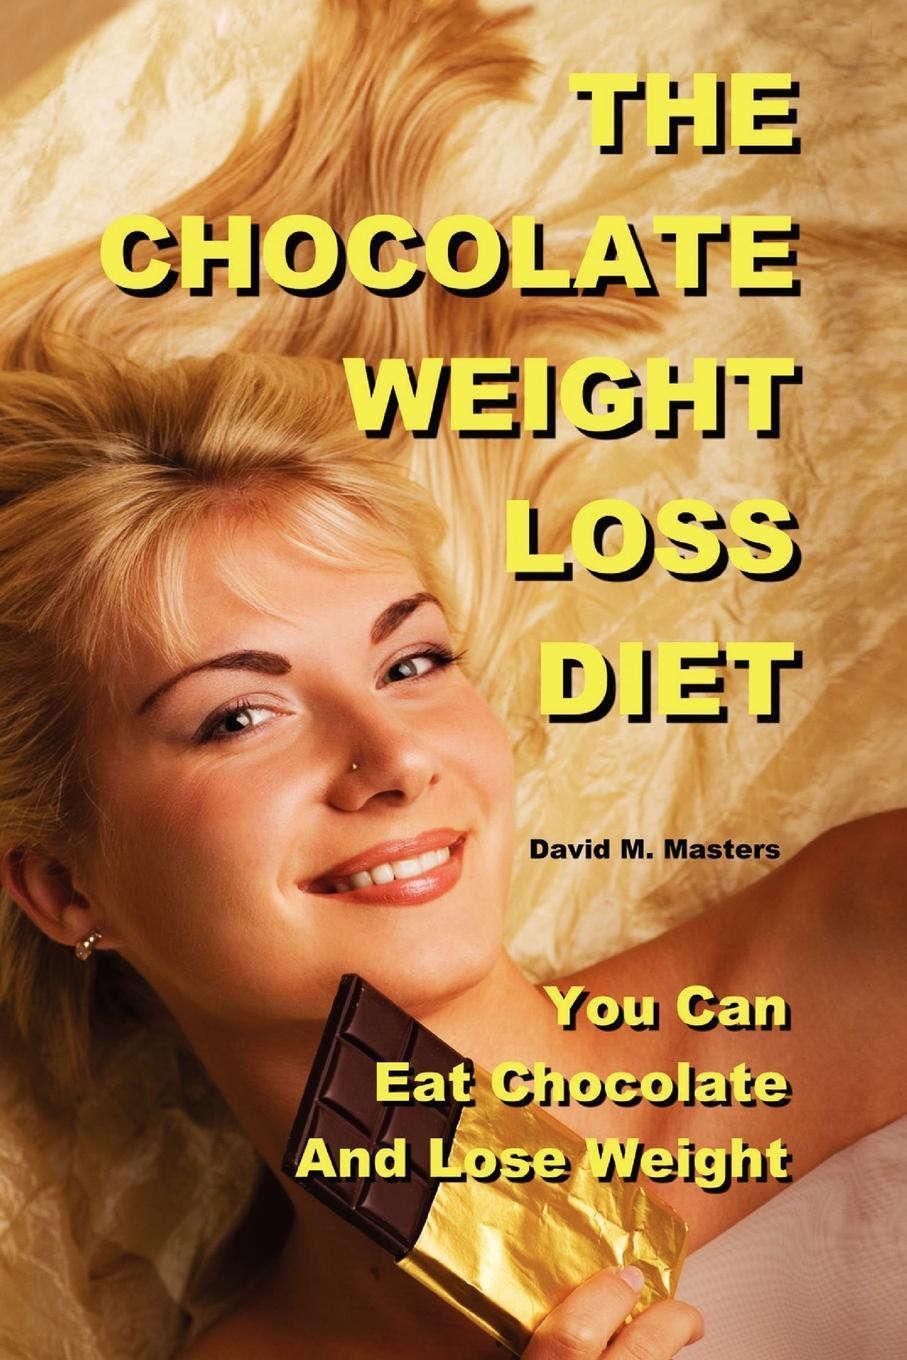 David M. Masters The Chocolate Weight Loss Diet